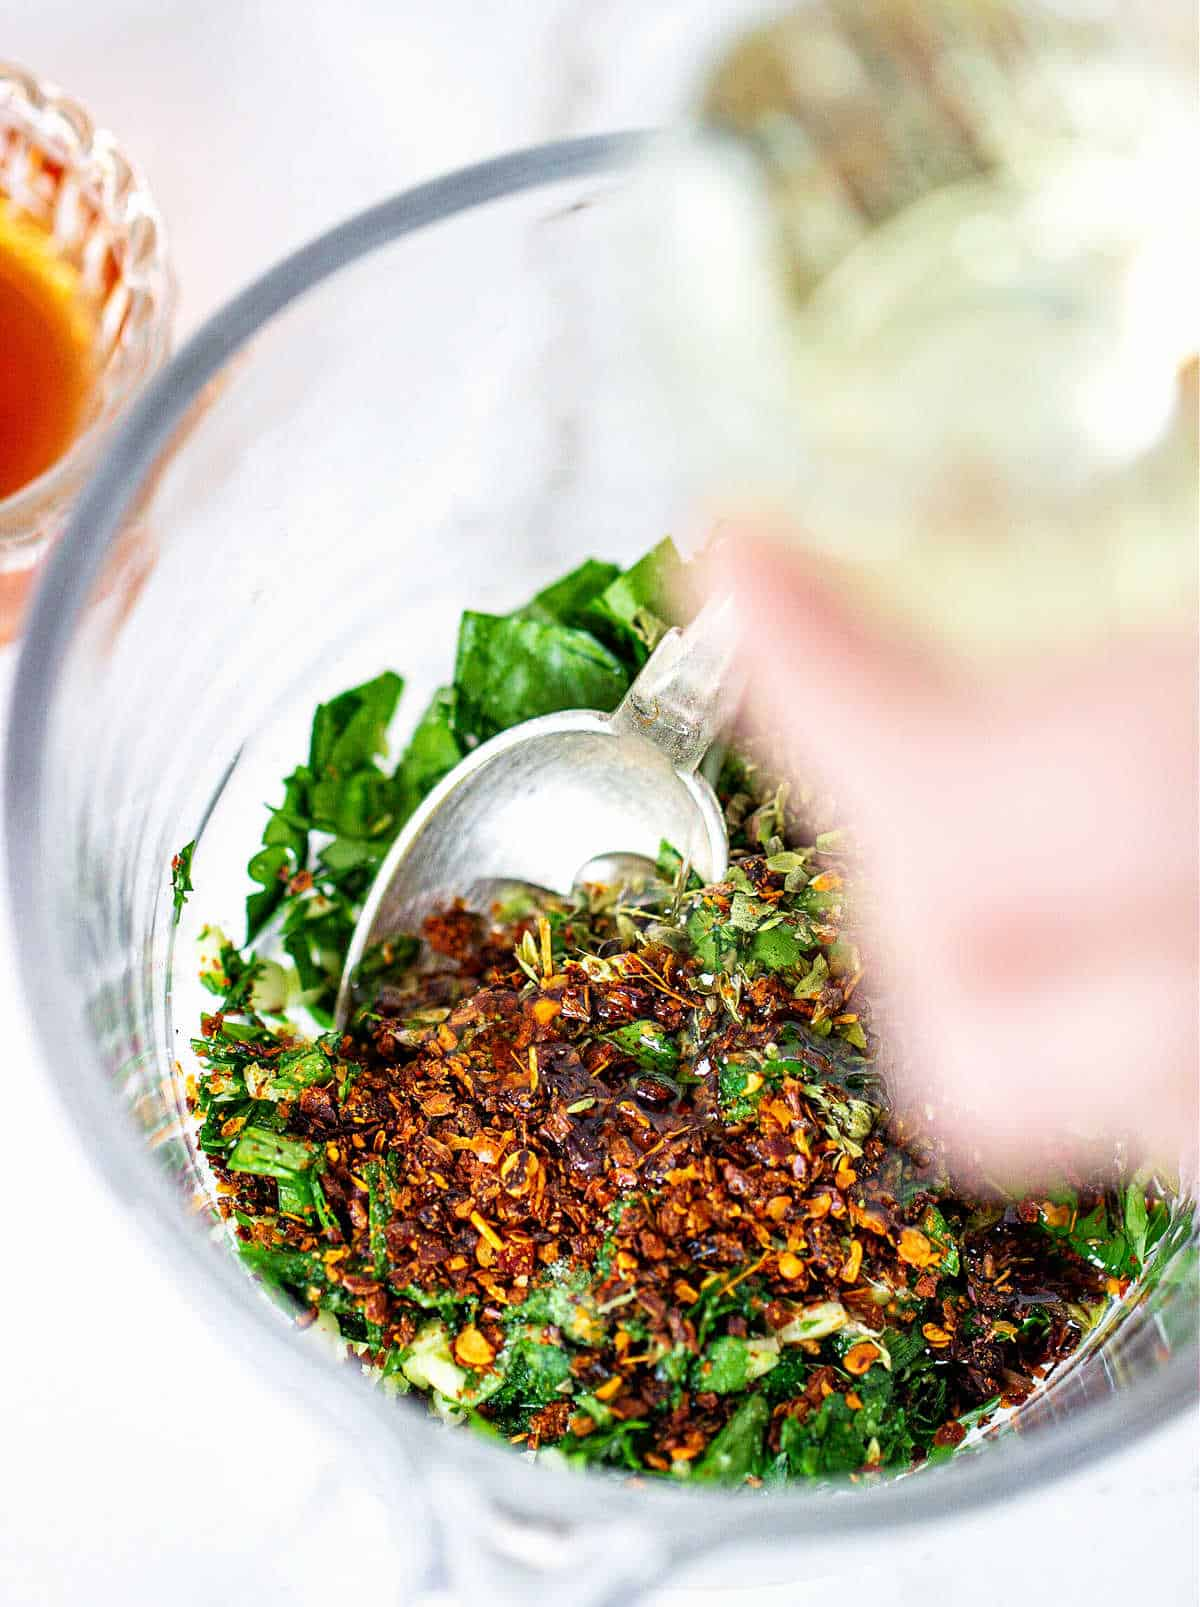 Adding oil to chimichurri ingredients in a glass jar